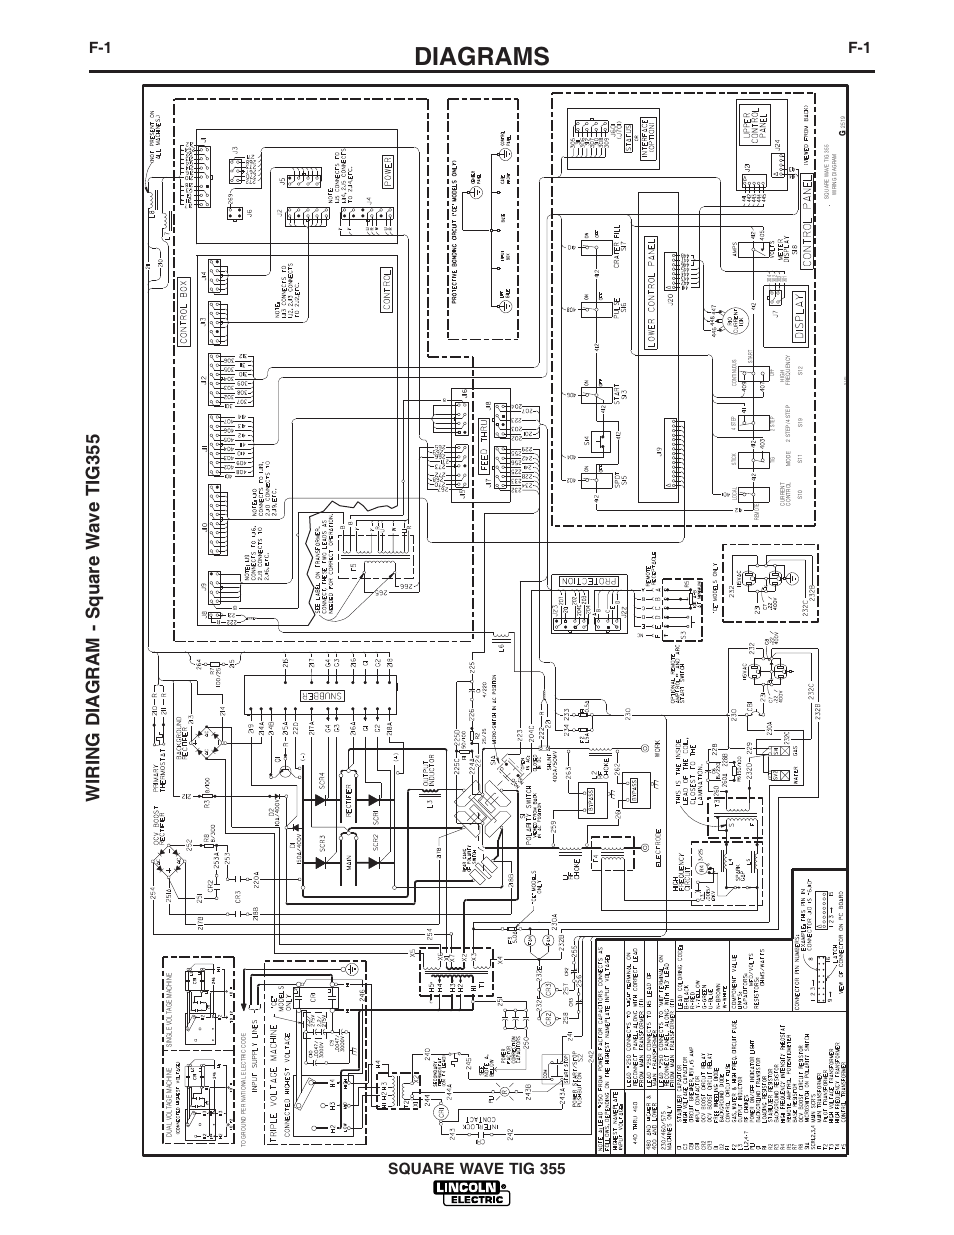 wiring diagrams online plant cell diagram without labels diagrams, - square w ave tig355, 25-97c | lincoln electric im467 wave tig ...